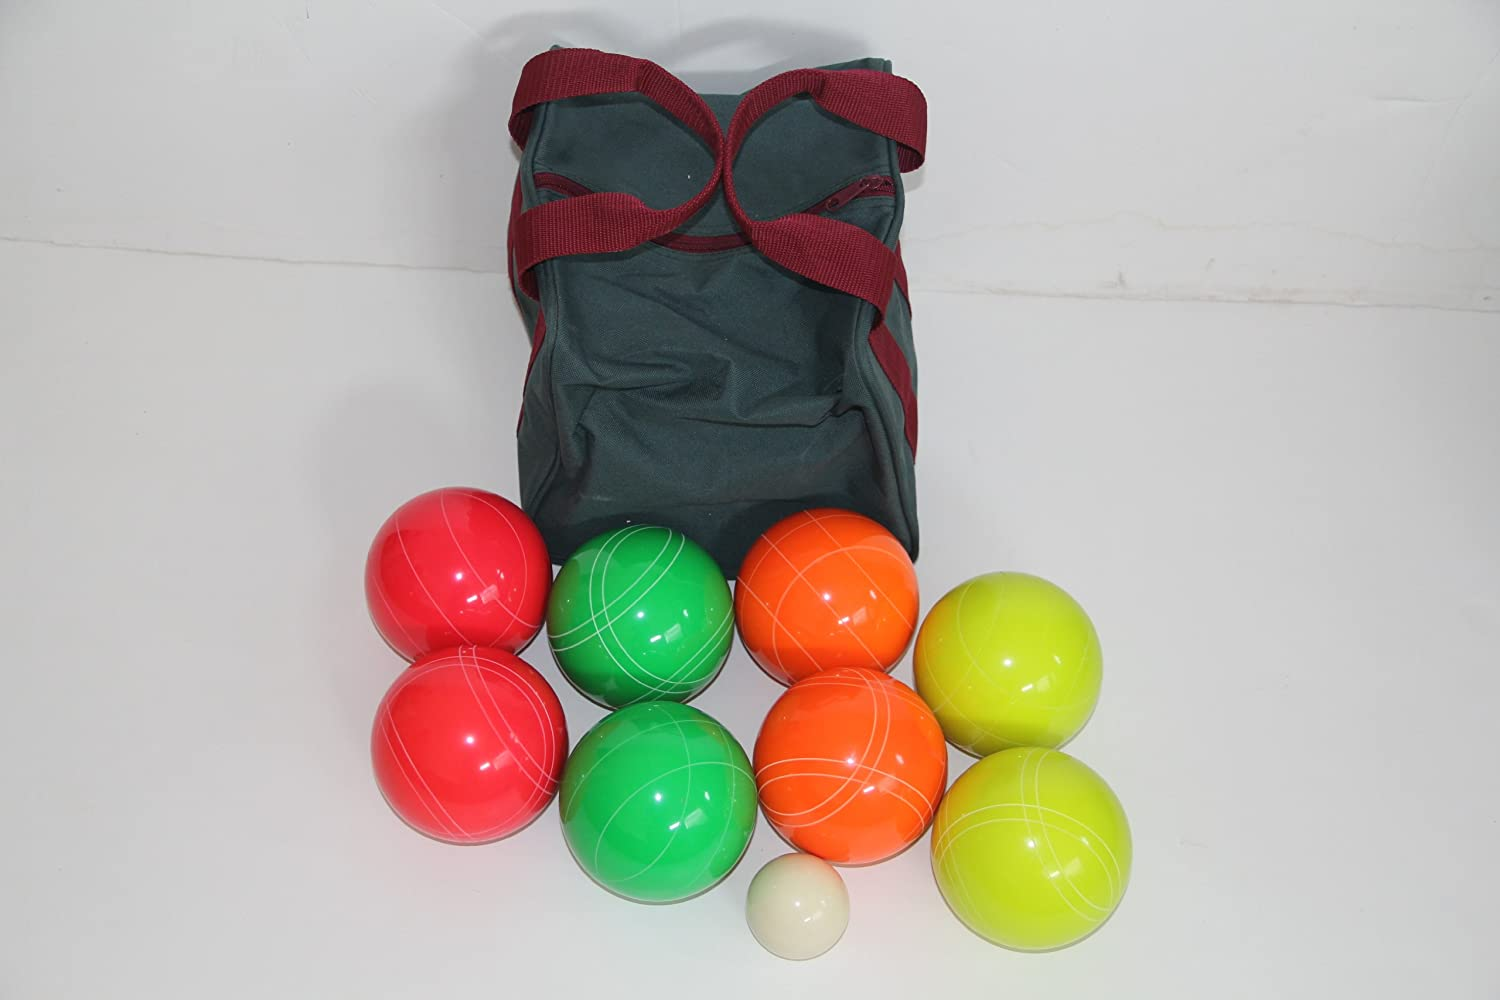 Premium Quality EPCO GLO Tournament Bocce Set  107mm Green, Red, Yellow, orange Bocce Balls [Toy]